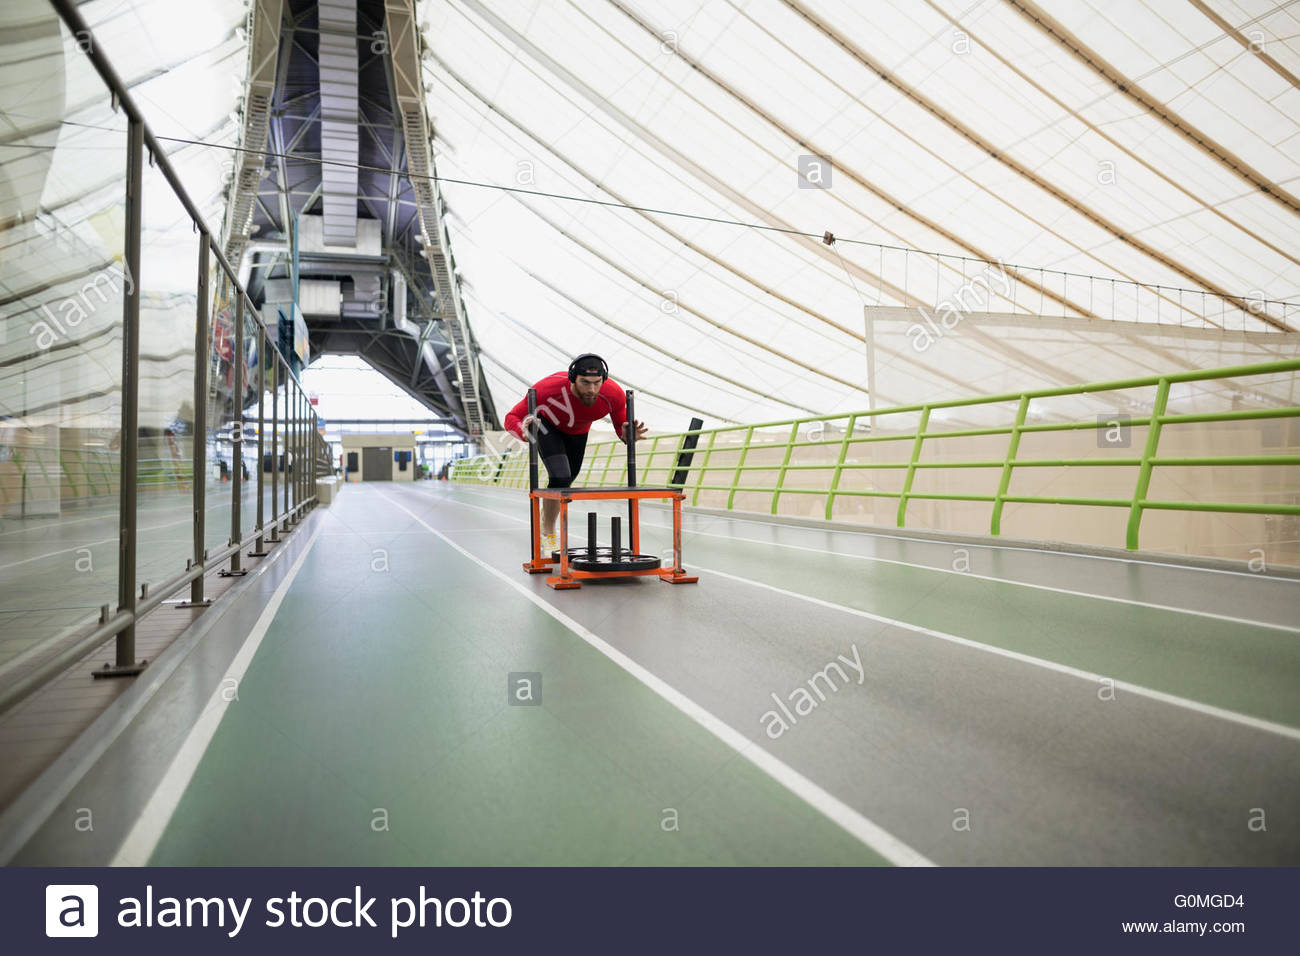 Runner pushing sprinting sled on indoor track - Stock Image